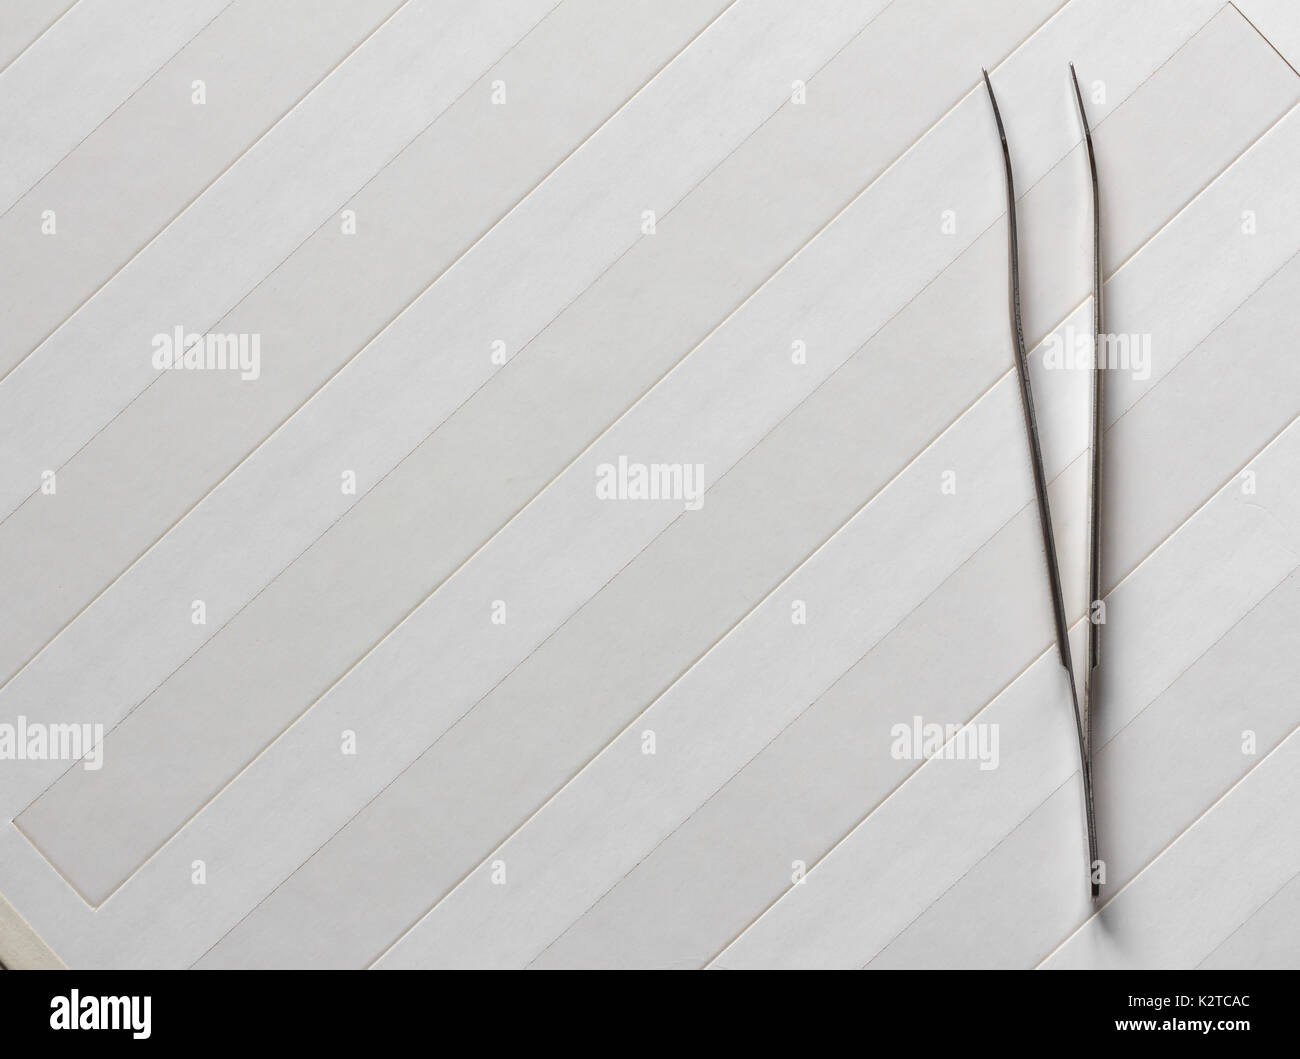 philatelic tweezers stainless steel on a blank album page for stamps vertically. top view closeup. Copy space. Free space for text - Stock Image